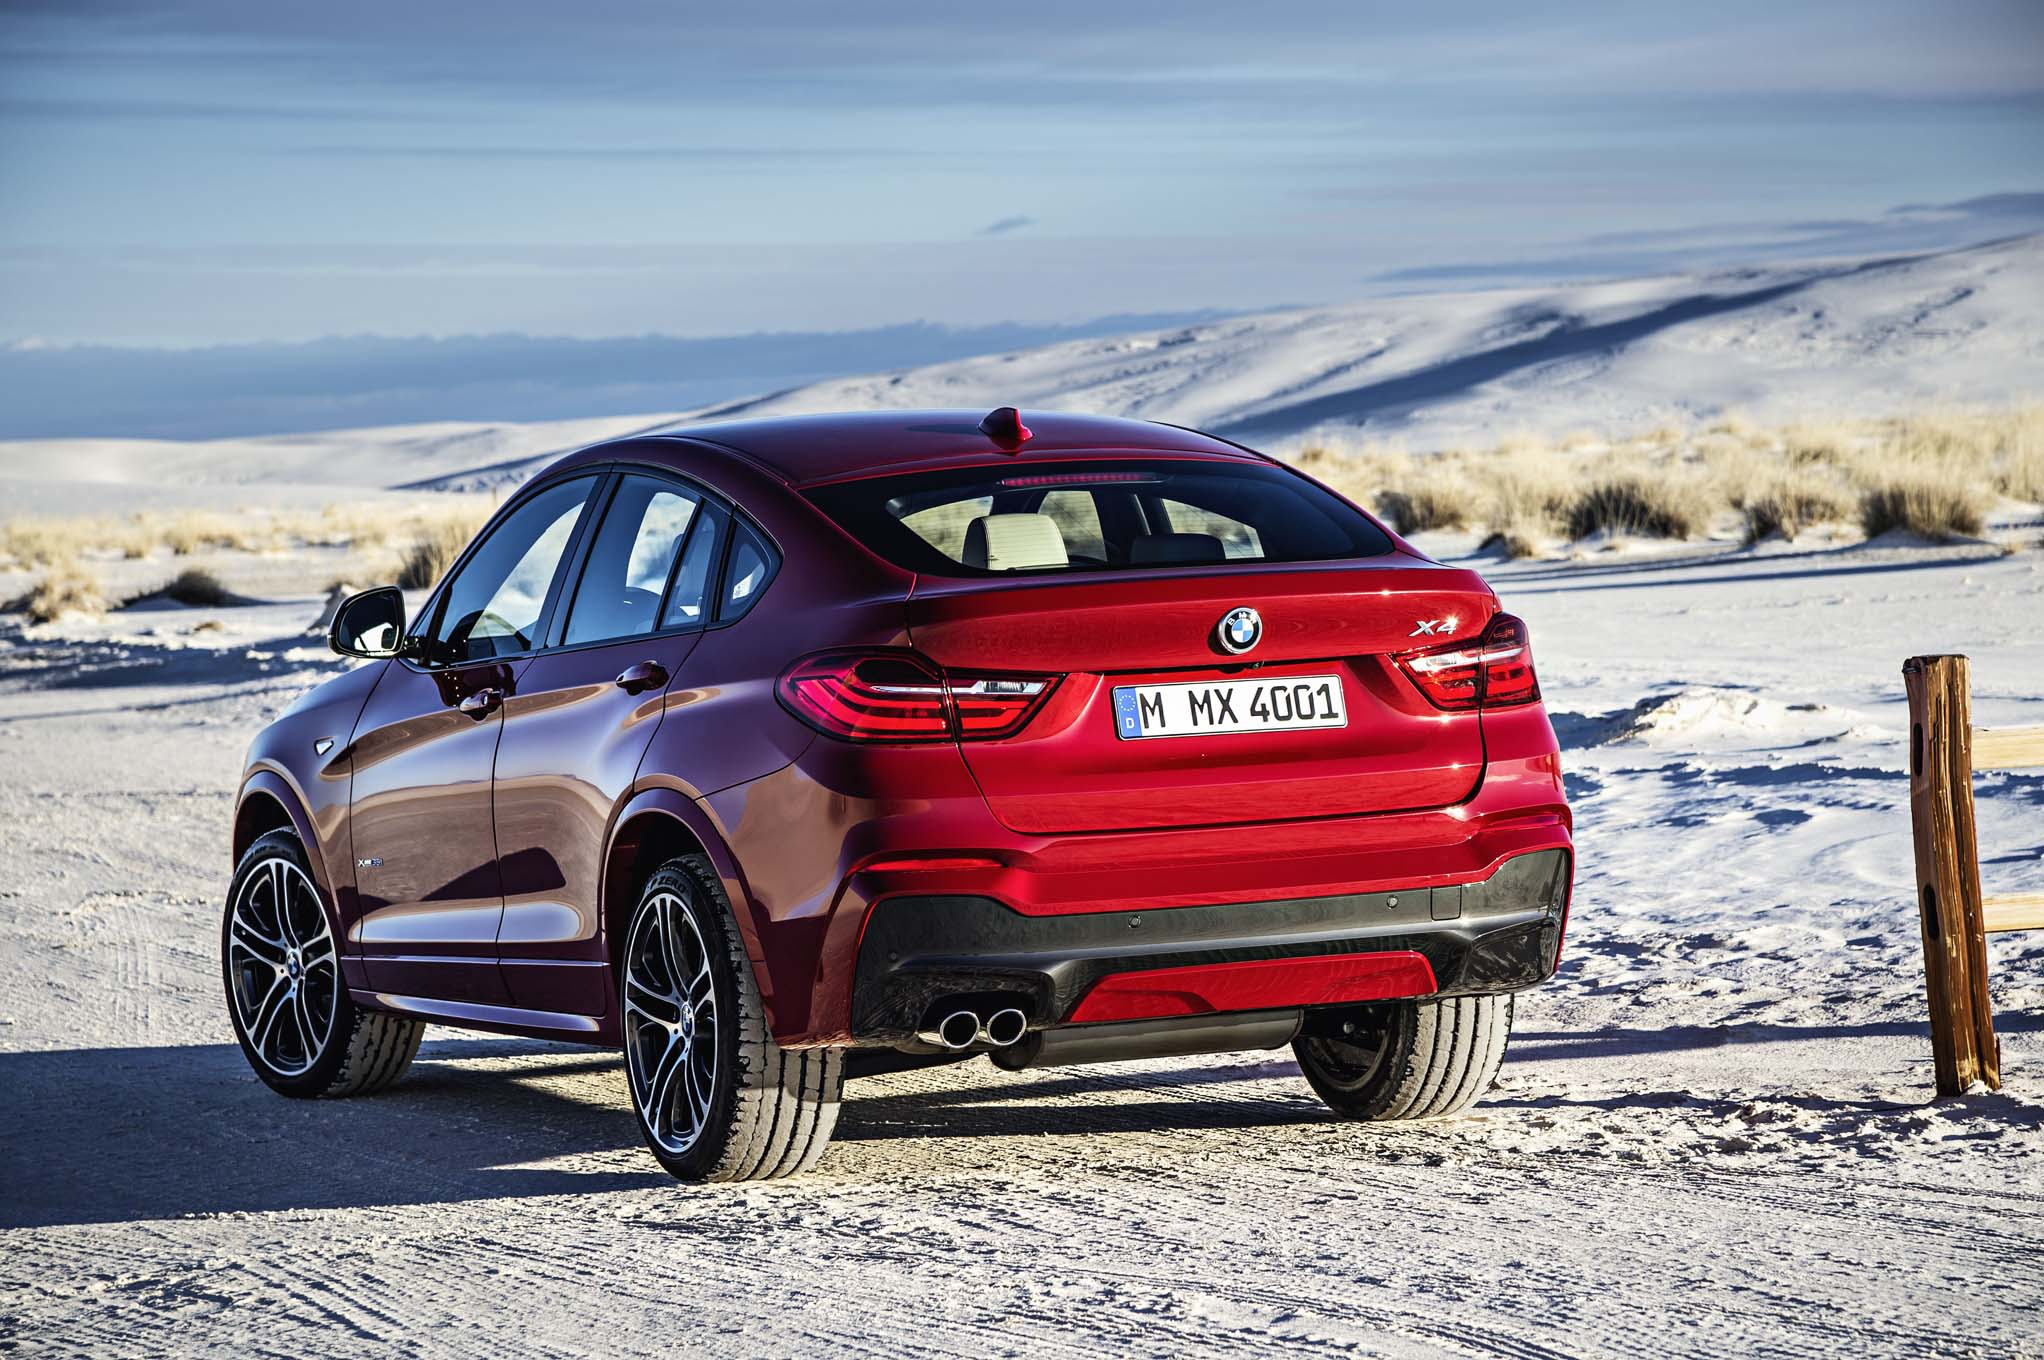 2015 Bmw X4 Rear Design (Photo 8 of 13)